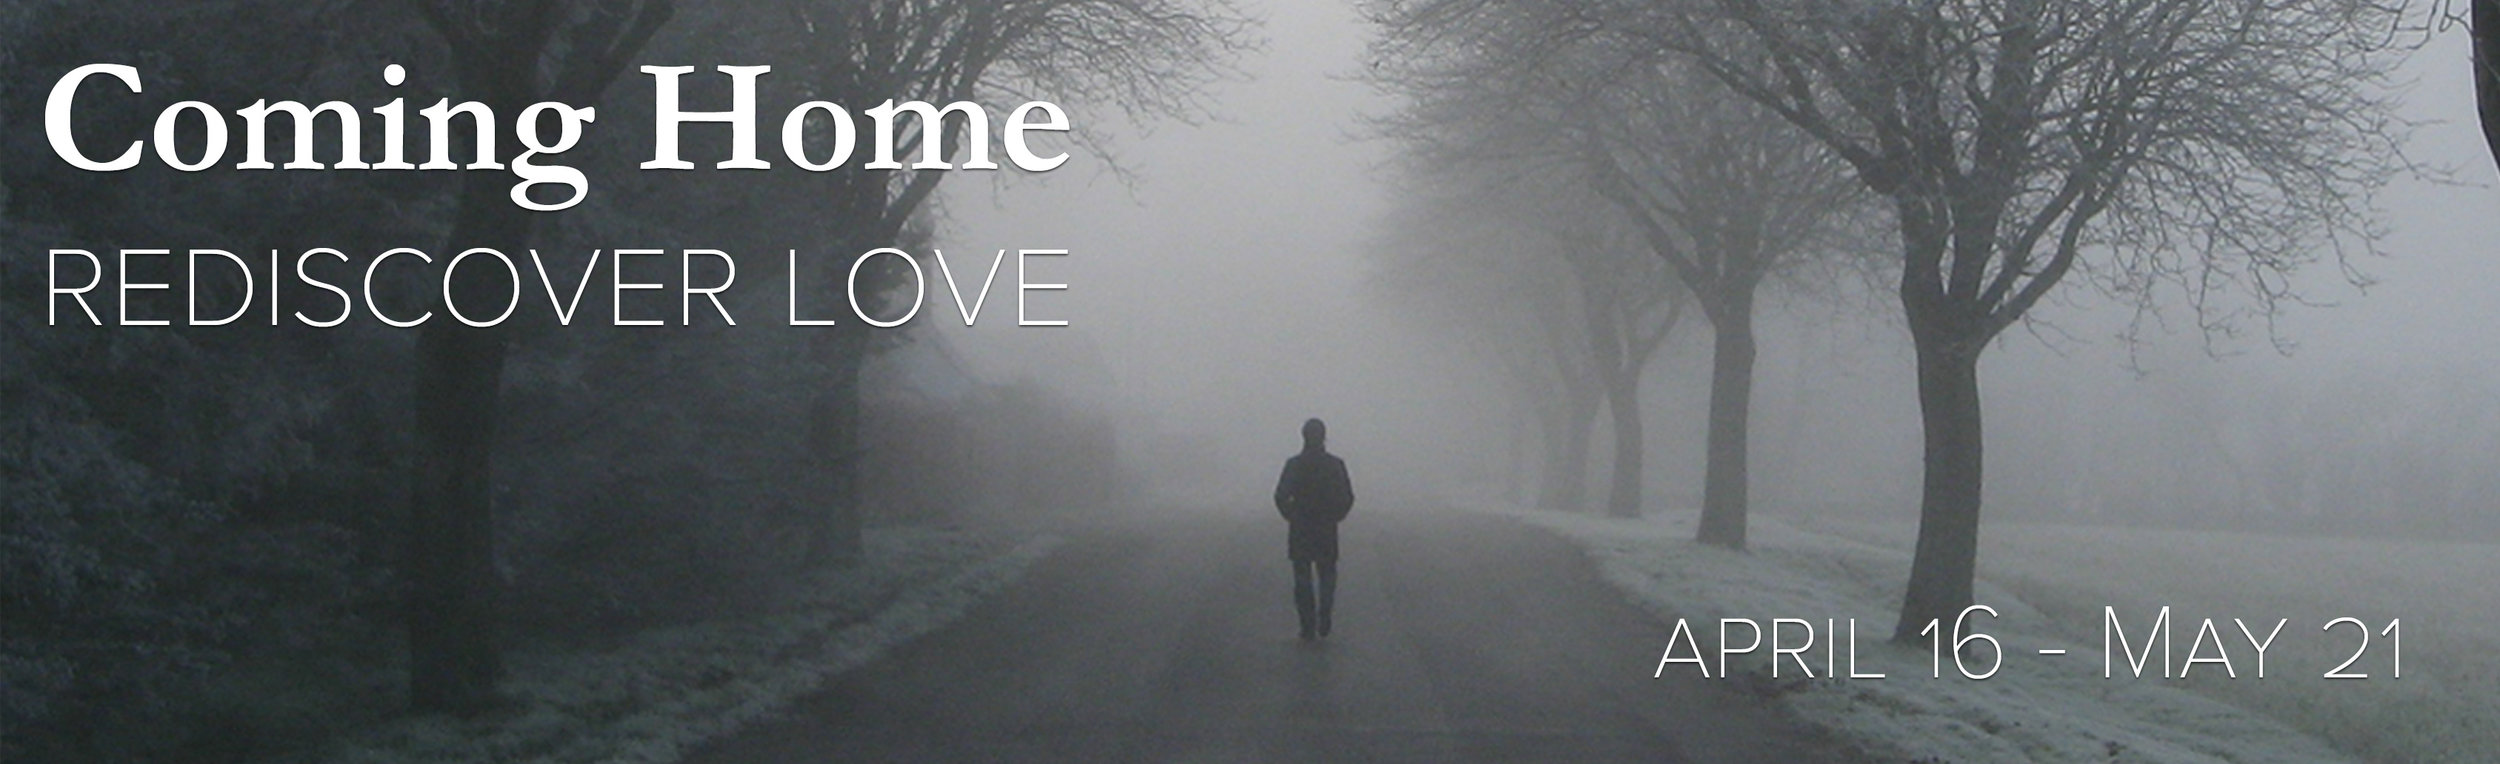 Coming Home - Rediscover Love